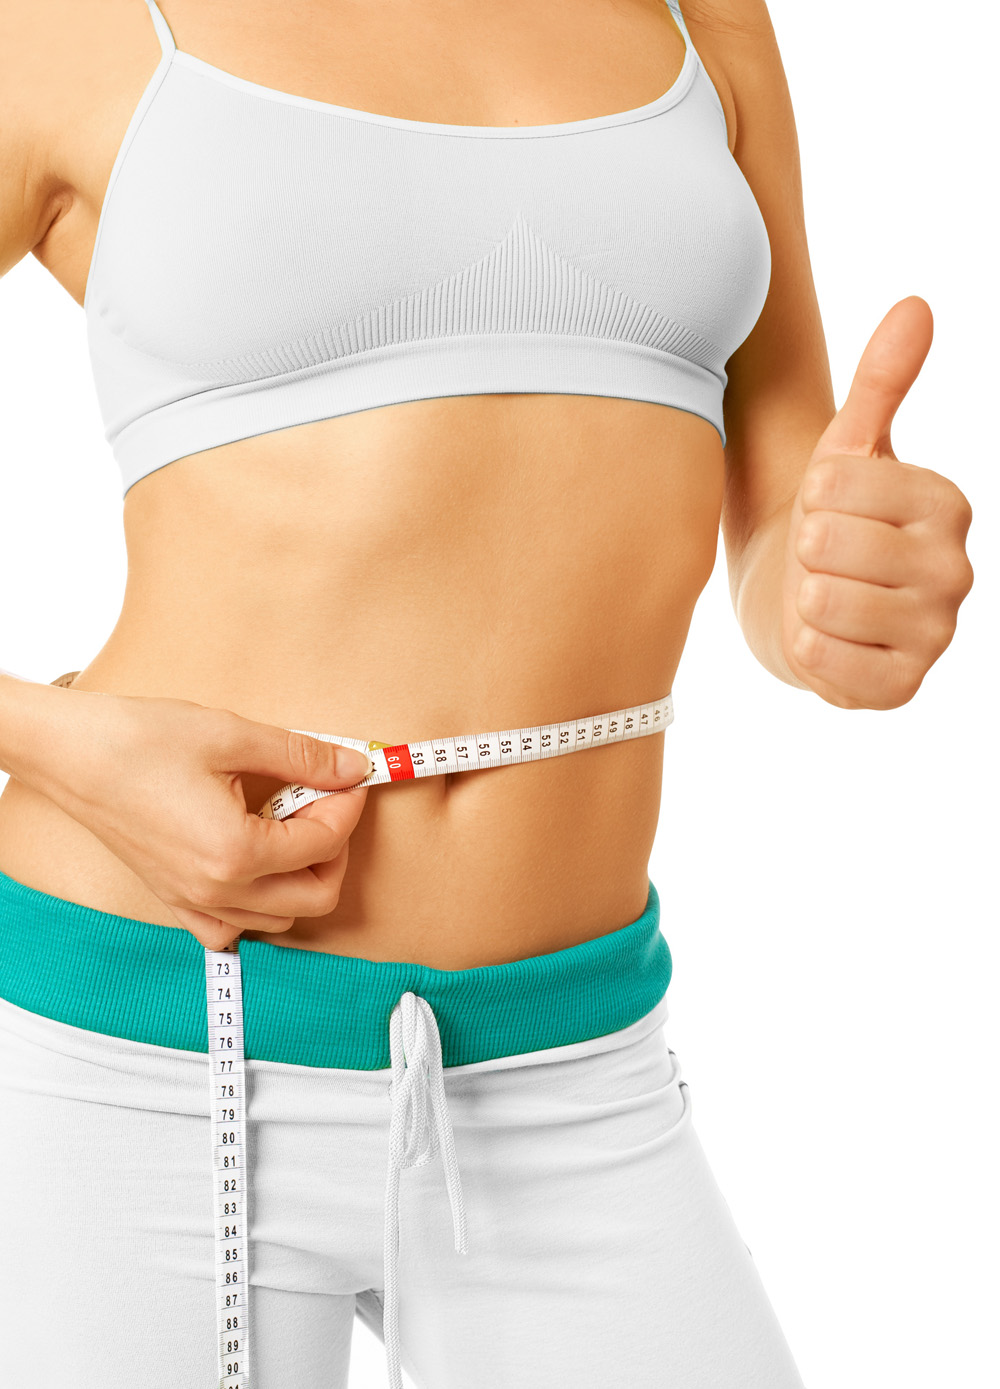 Growth Hormone or Fat Fighter: Can Growth Hormone Trigger Weight Loss? -  Women Fitness